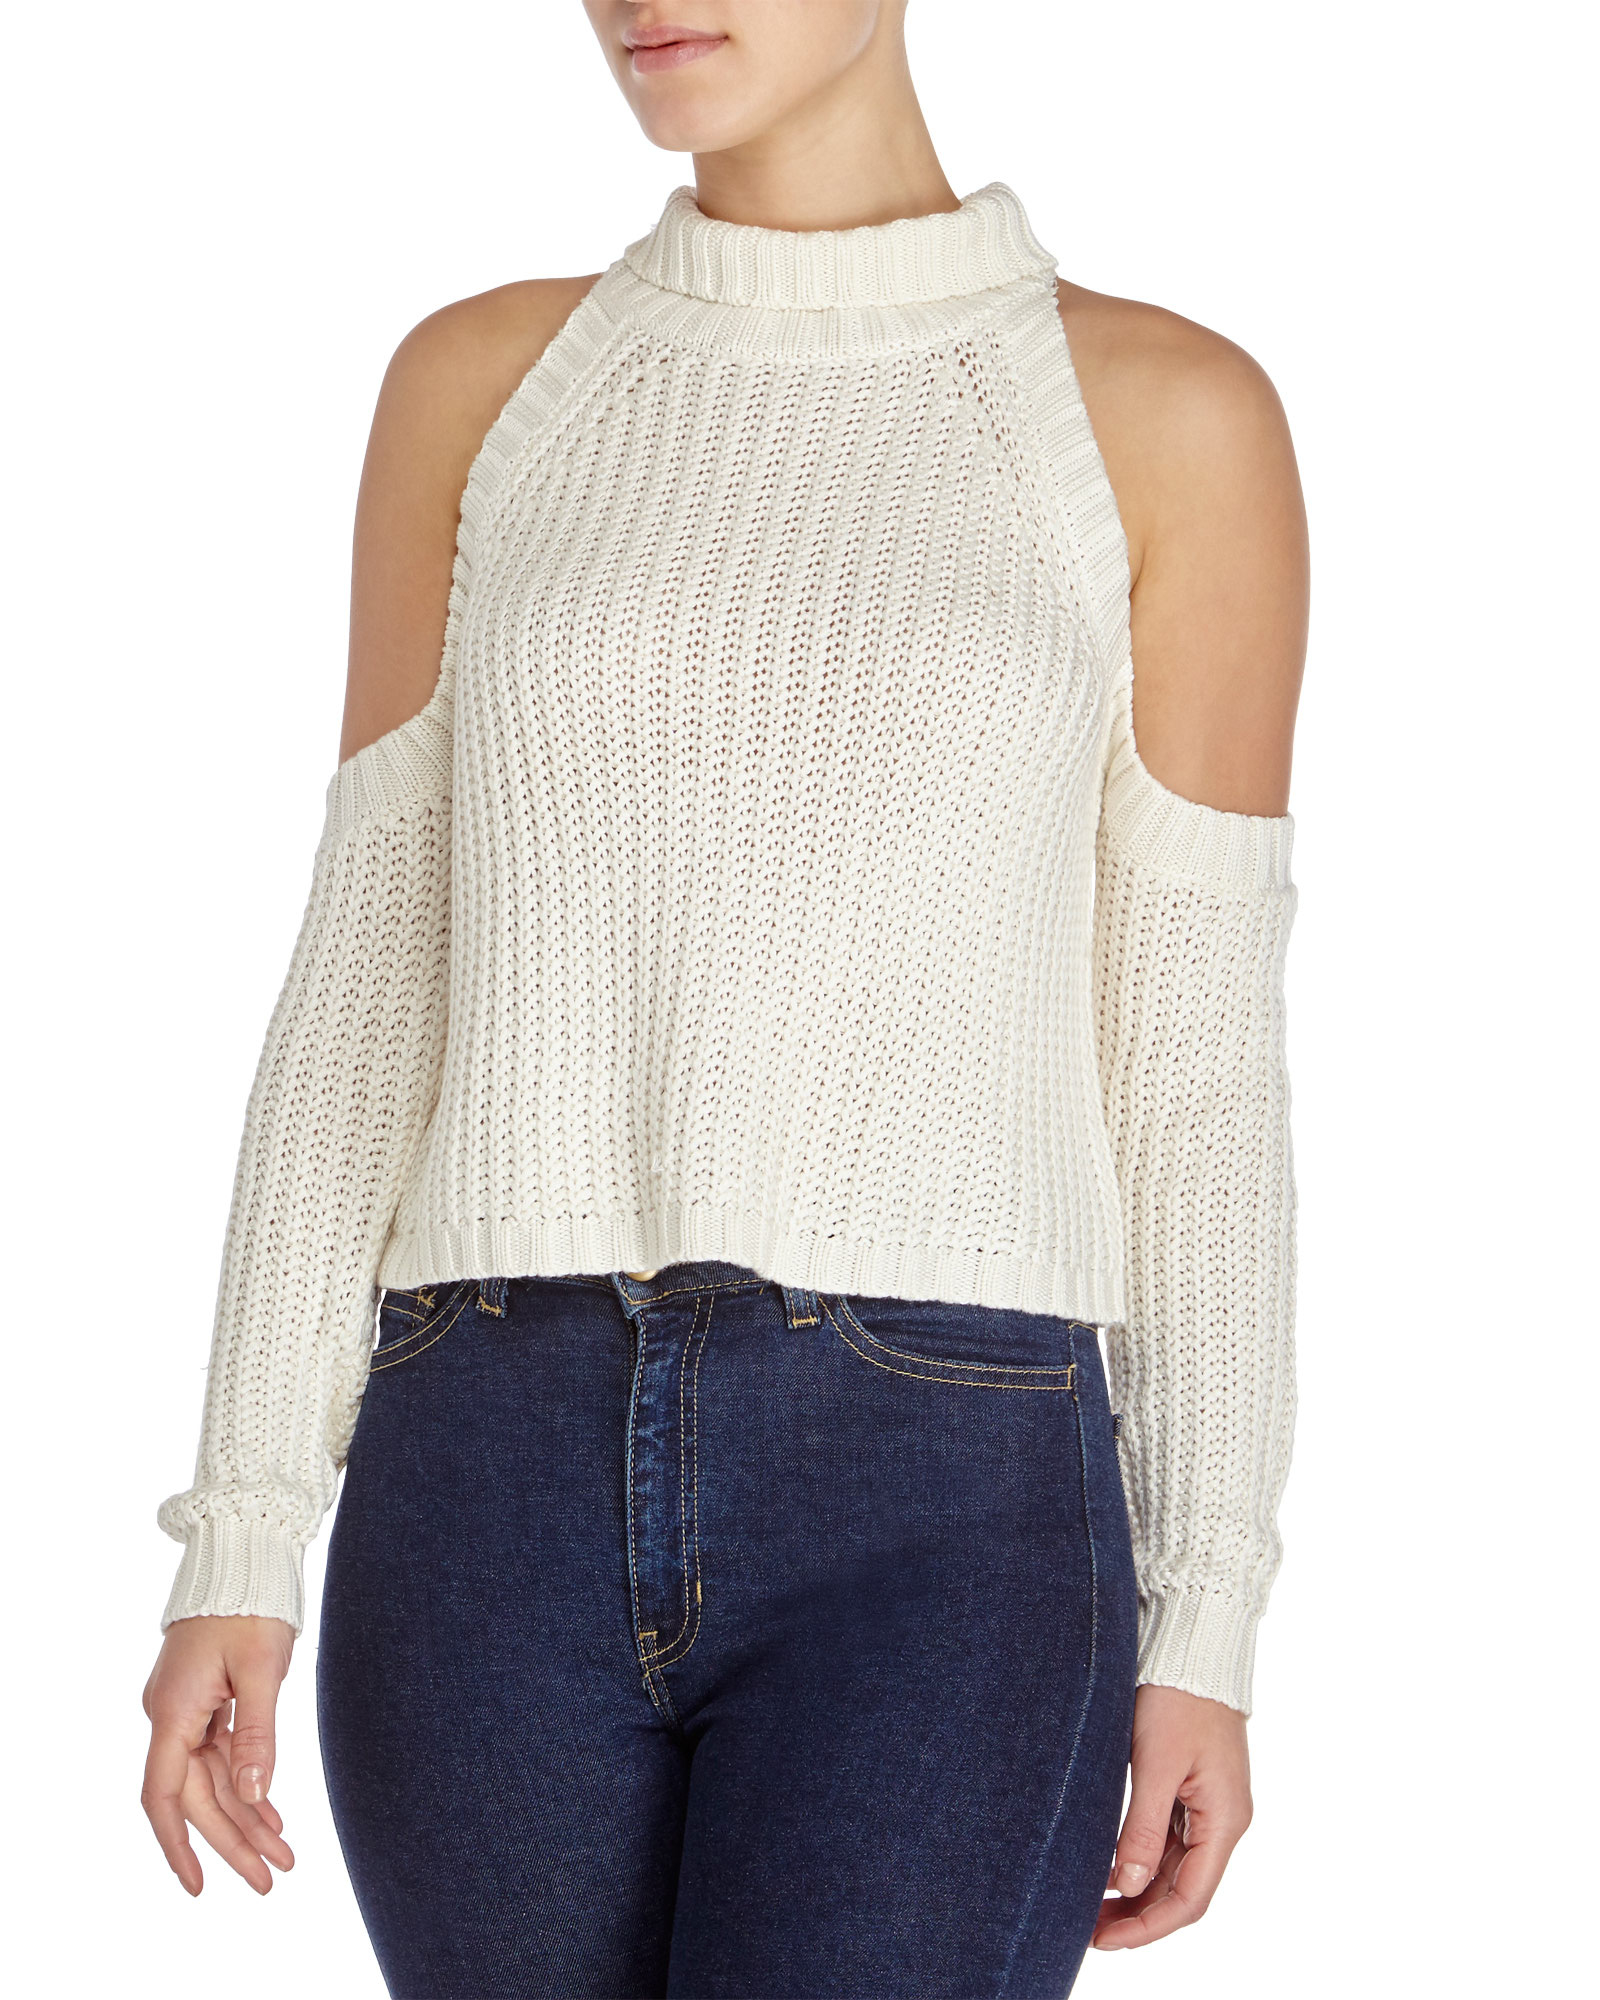 d42653010c0228 Lyst - Olivaceous Cold Shoulder Fisherman S Rib Sweater in White